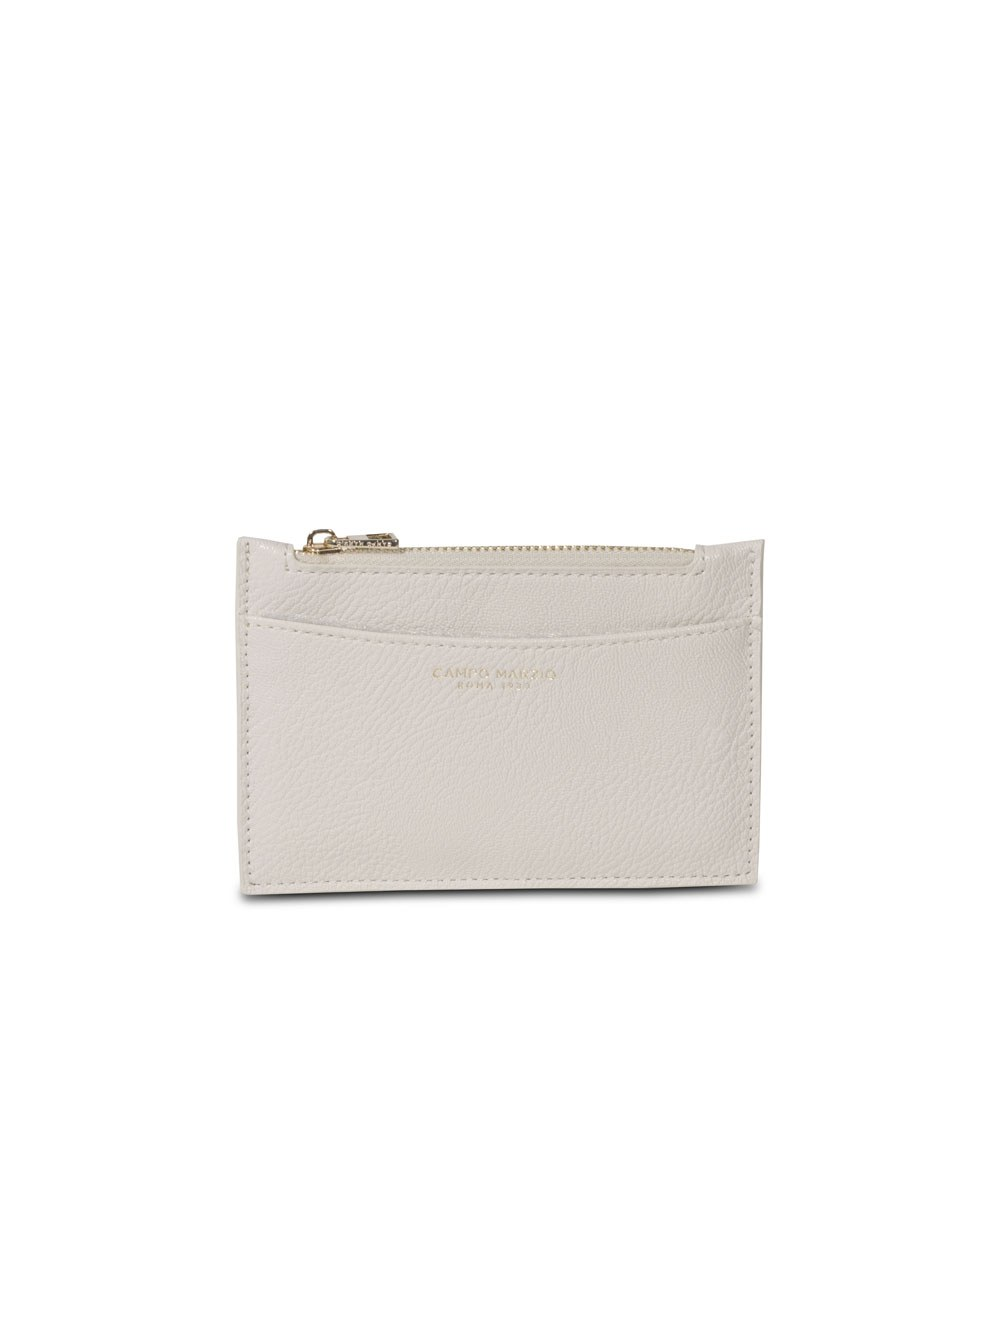 Card Holder With Zip - Off White